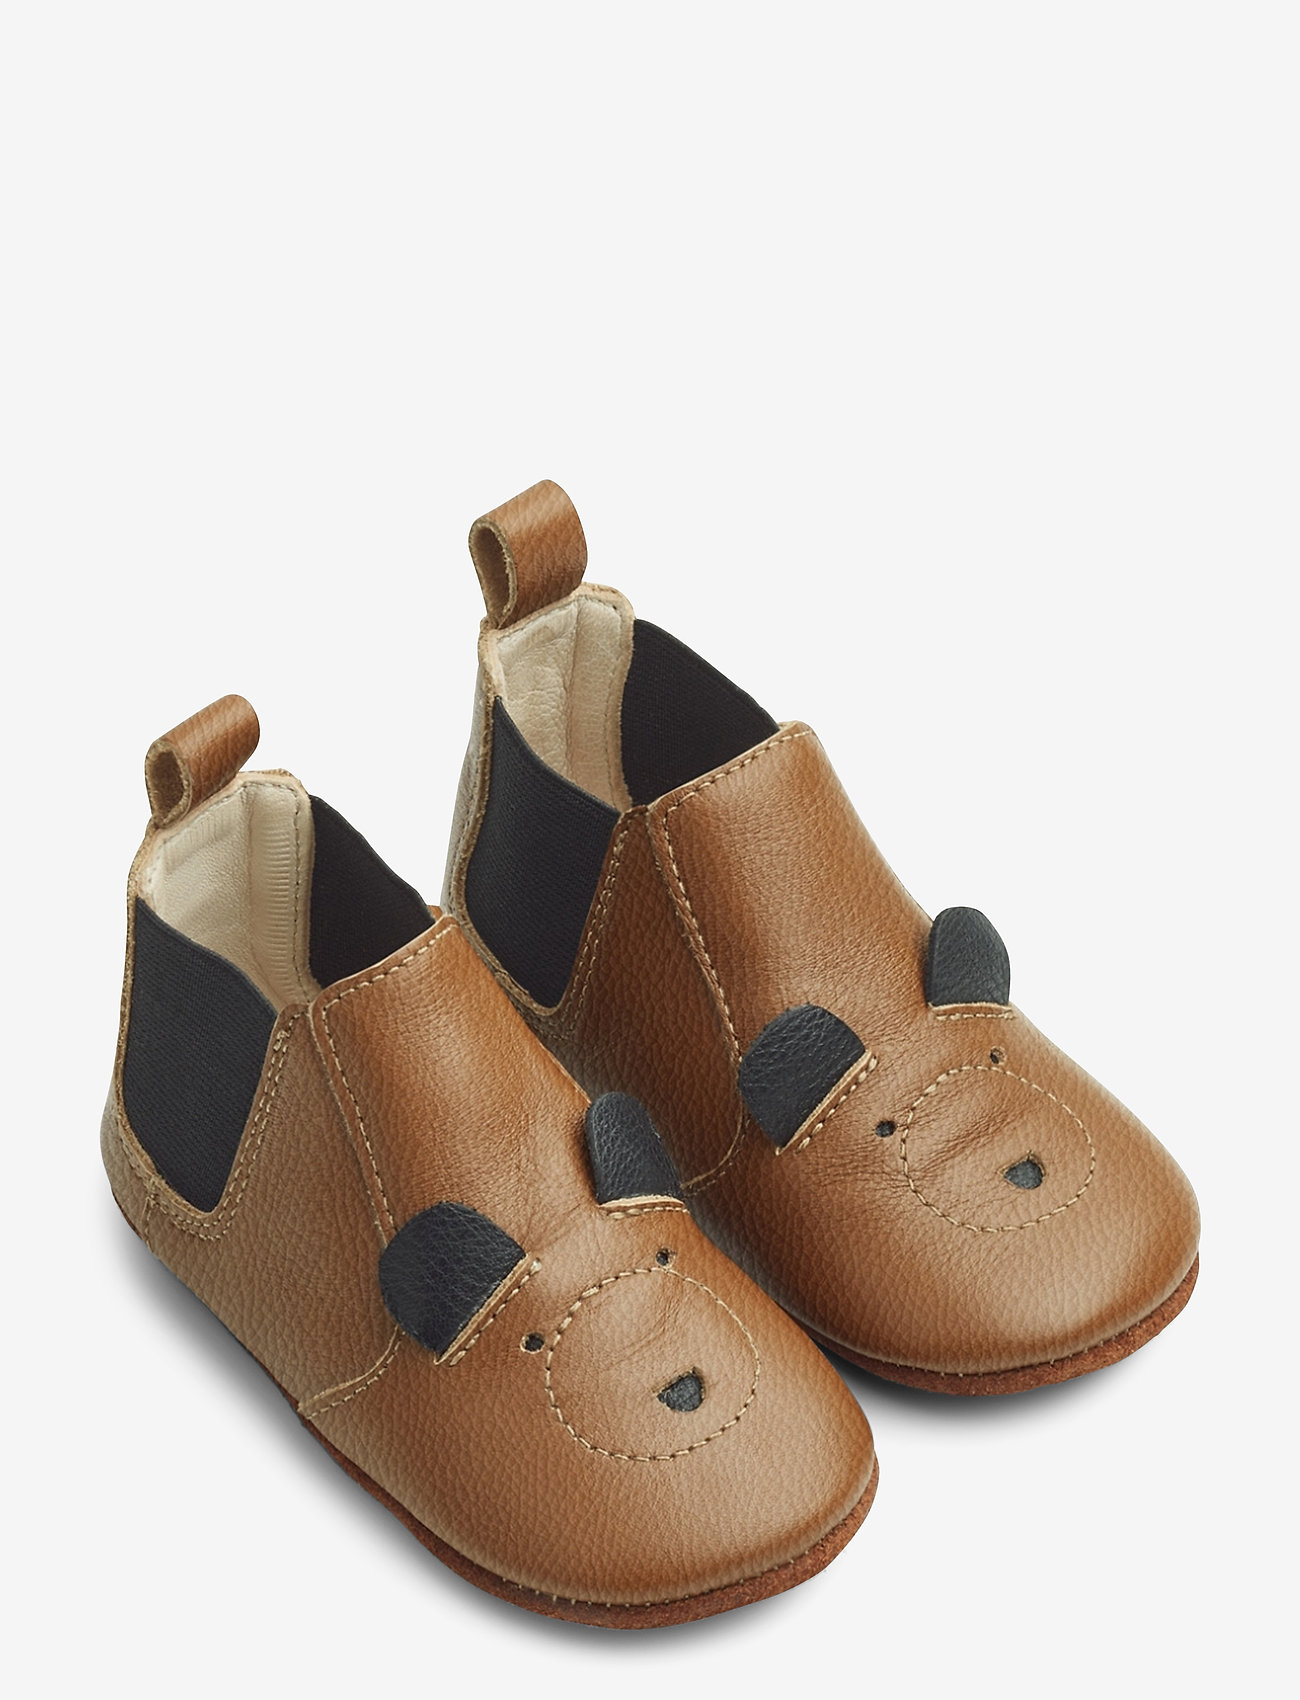 Liewood - Edith leather slippers - domowe - mr bear mustard - 1